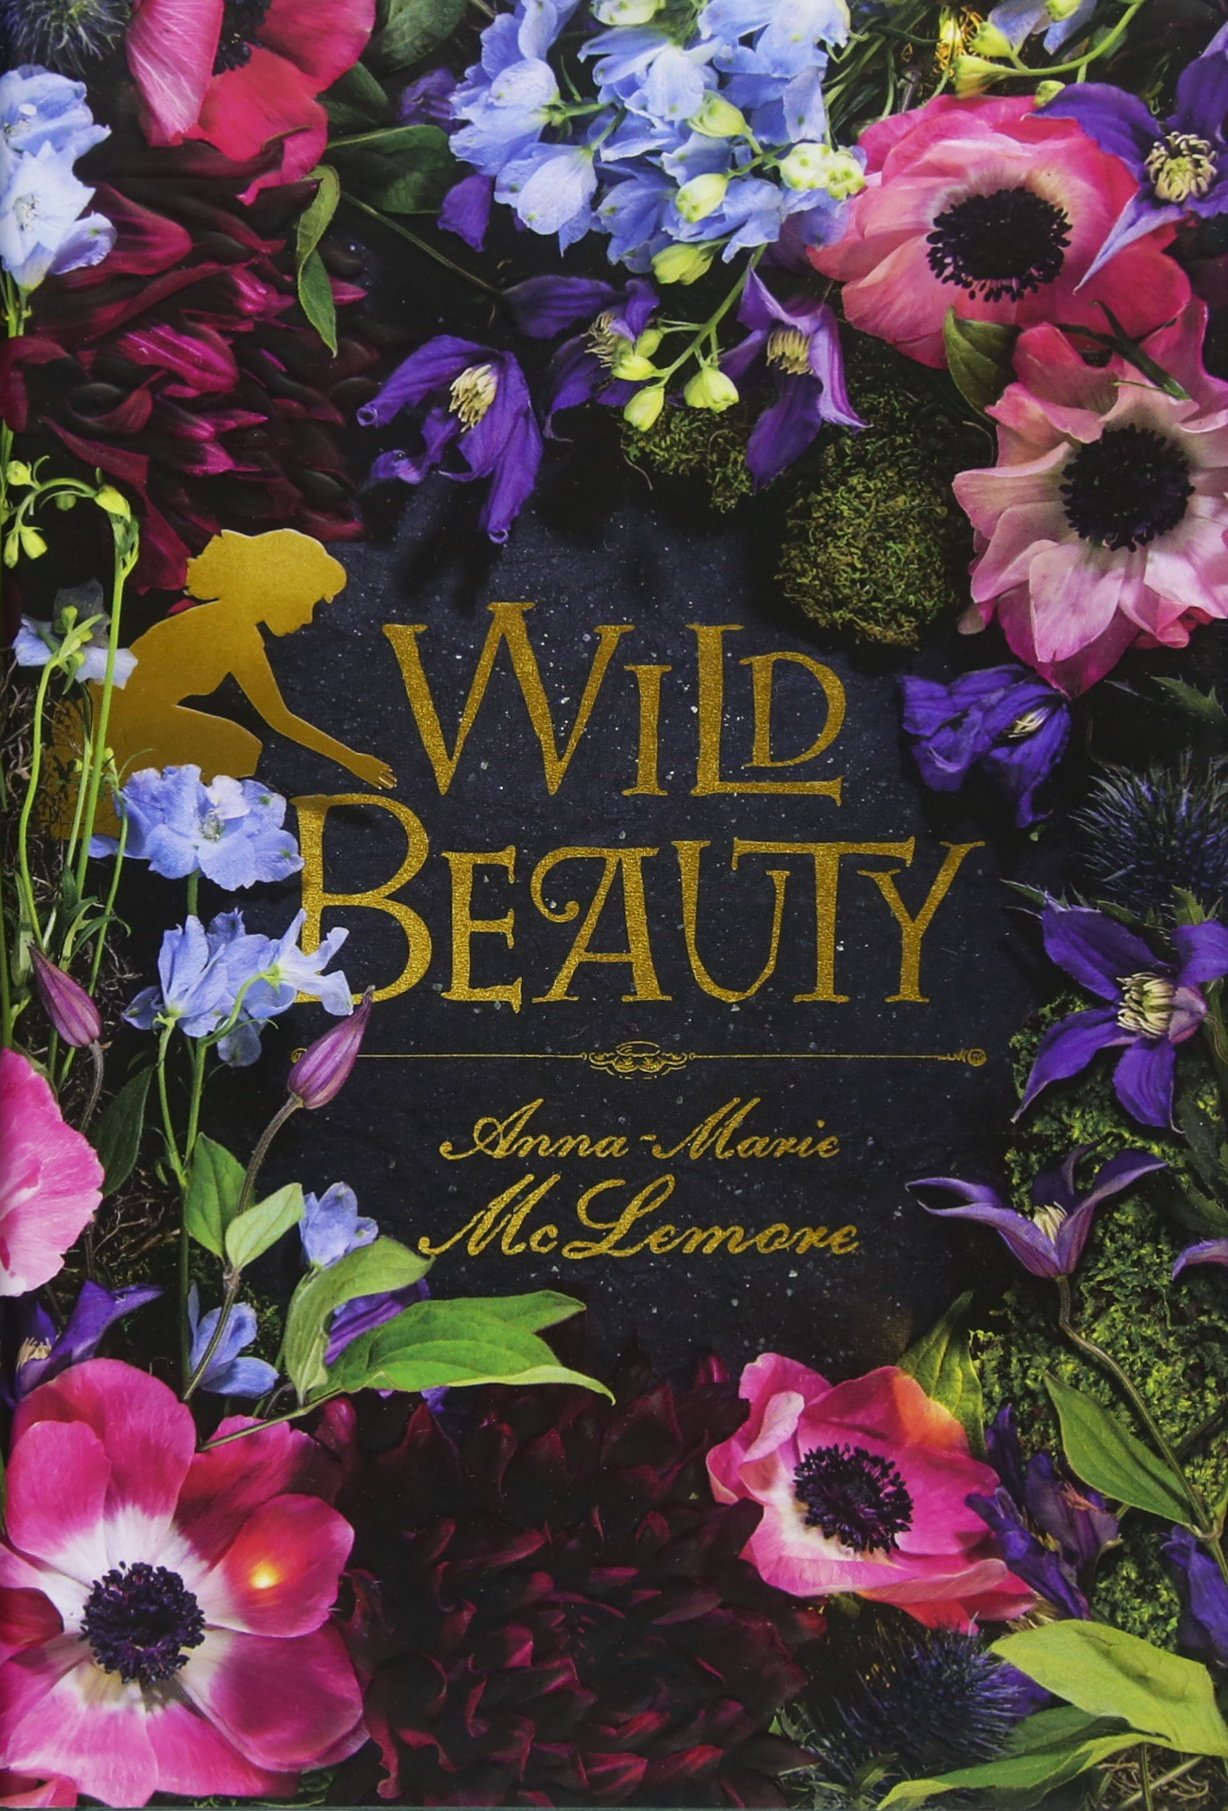 Amazon.com: Wild Beauty: A Novel (9781250124555): McLemore, Anna ...